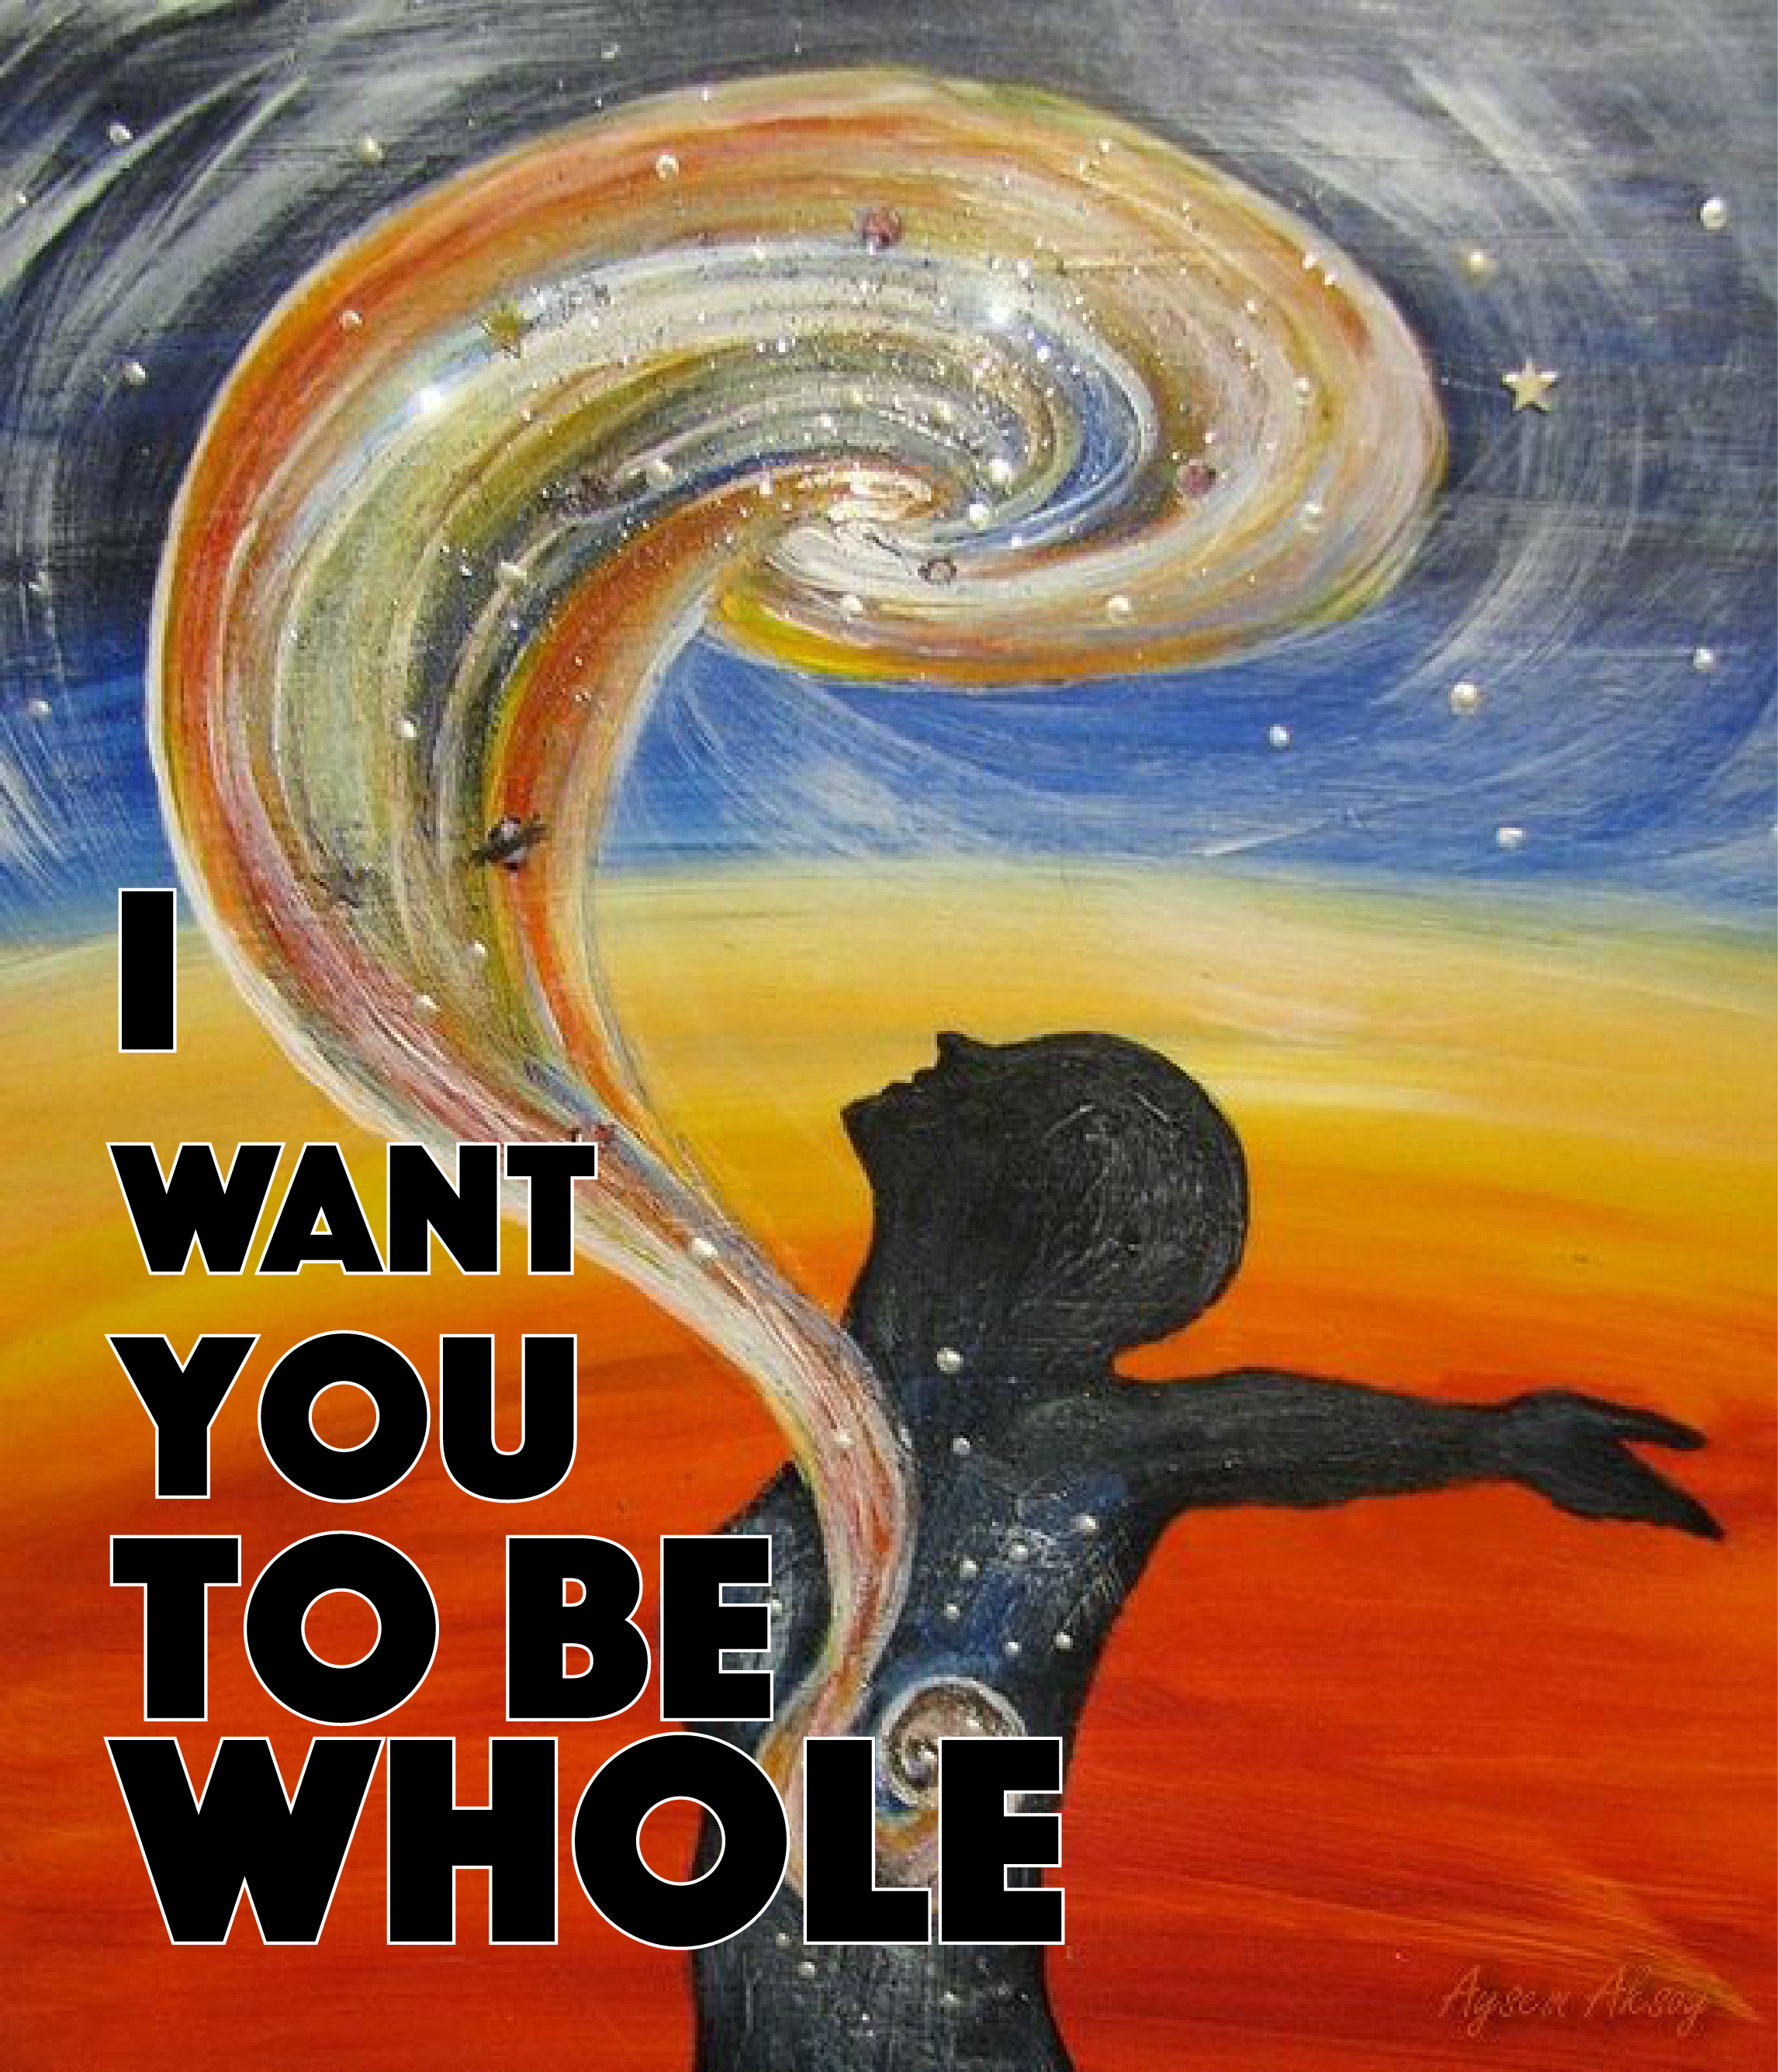 I want you to be whole